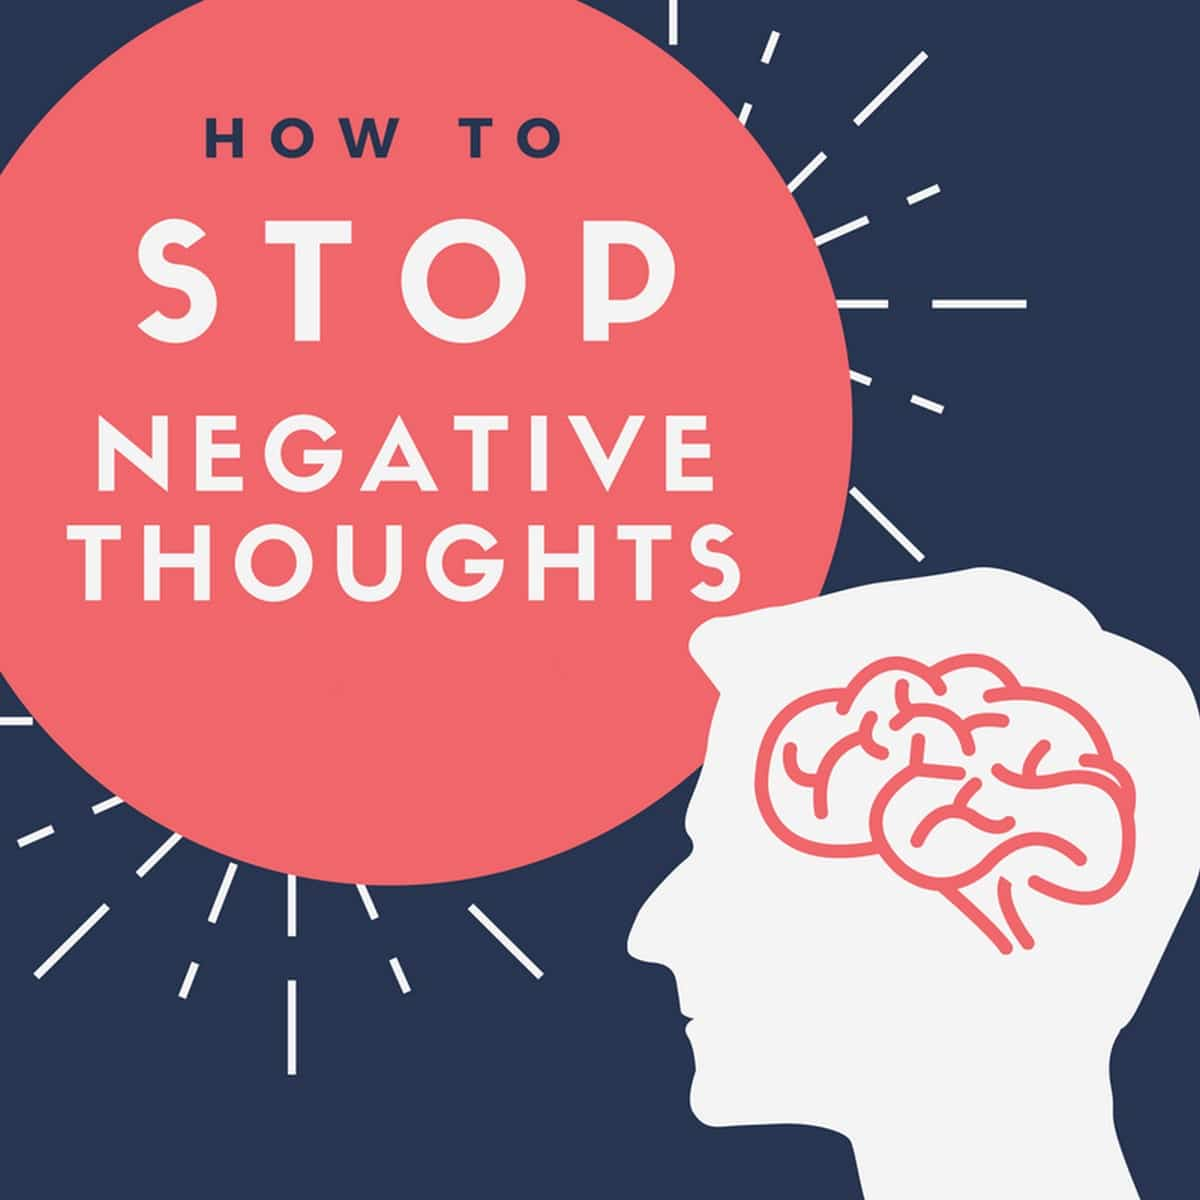 How To Control Negative Thoughts - 1